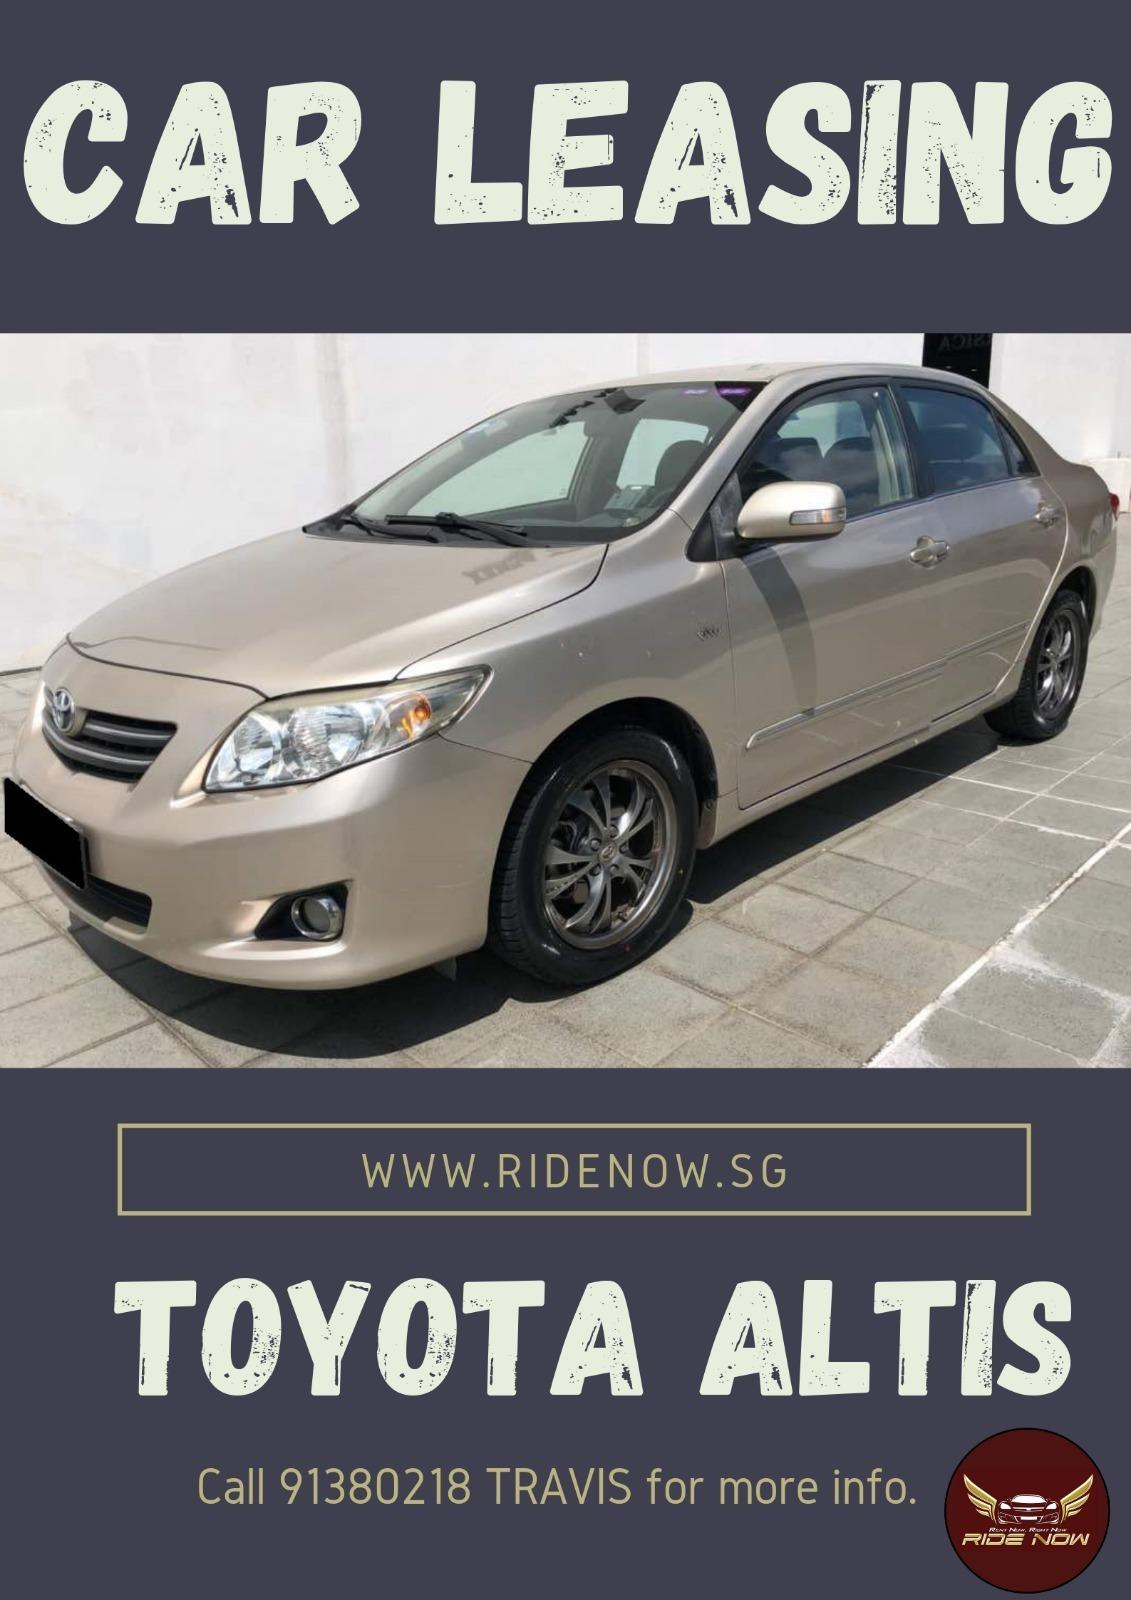 Toyota Altis 1.6A Fuel efficient vehicle for Private Hire Usage!